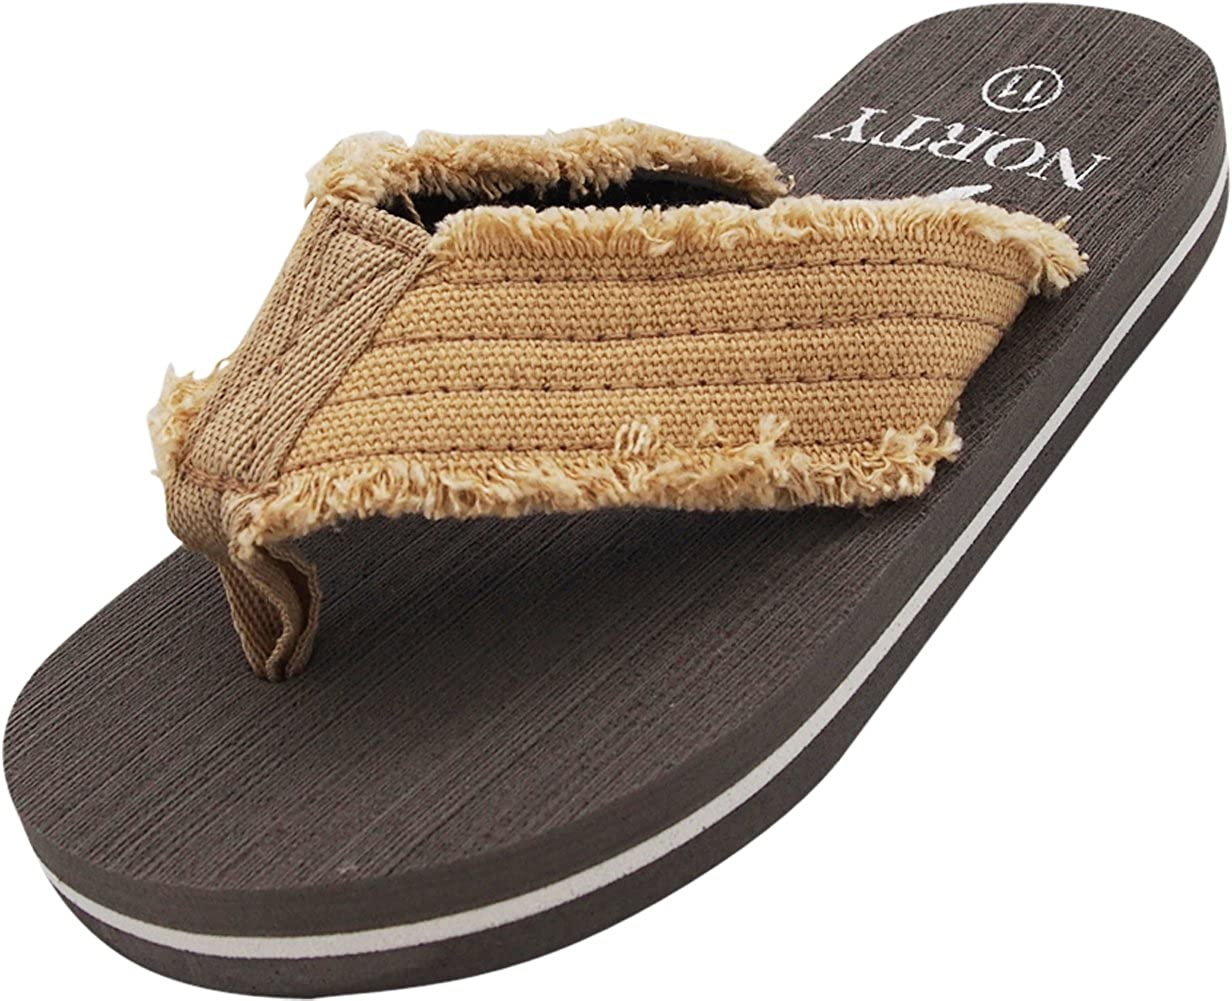 NORTY - Boy's Lightweight Thong Flip Flop Sandal for Everyday, Beach or Pool - Runs 1 Size Small